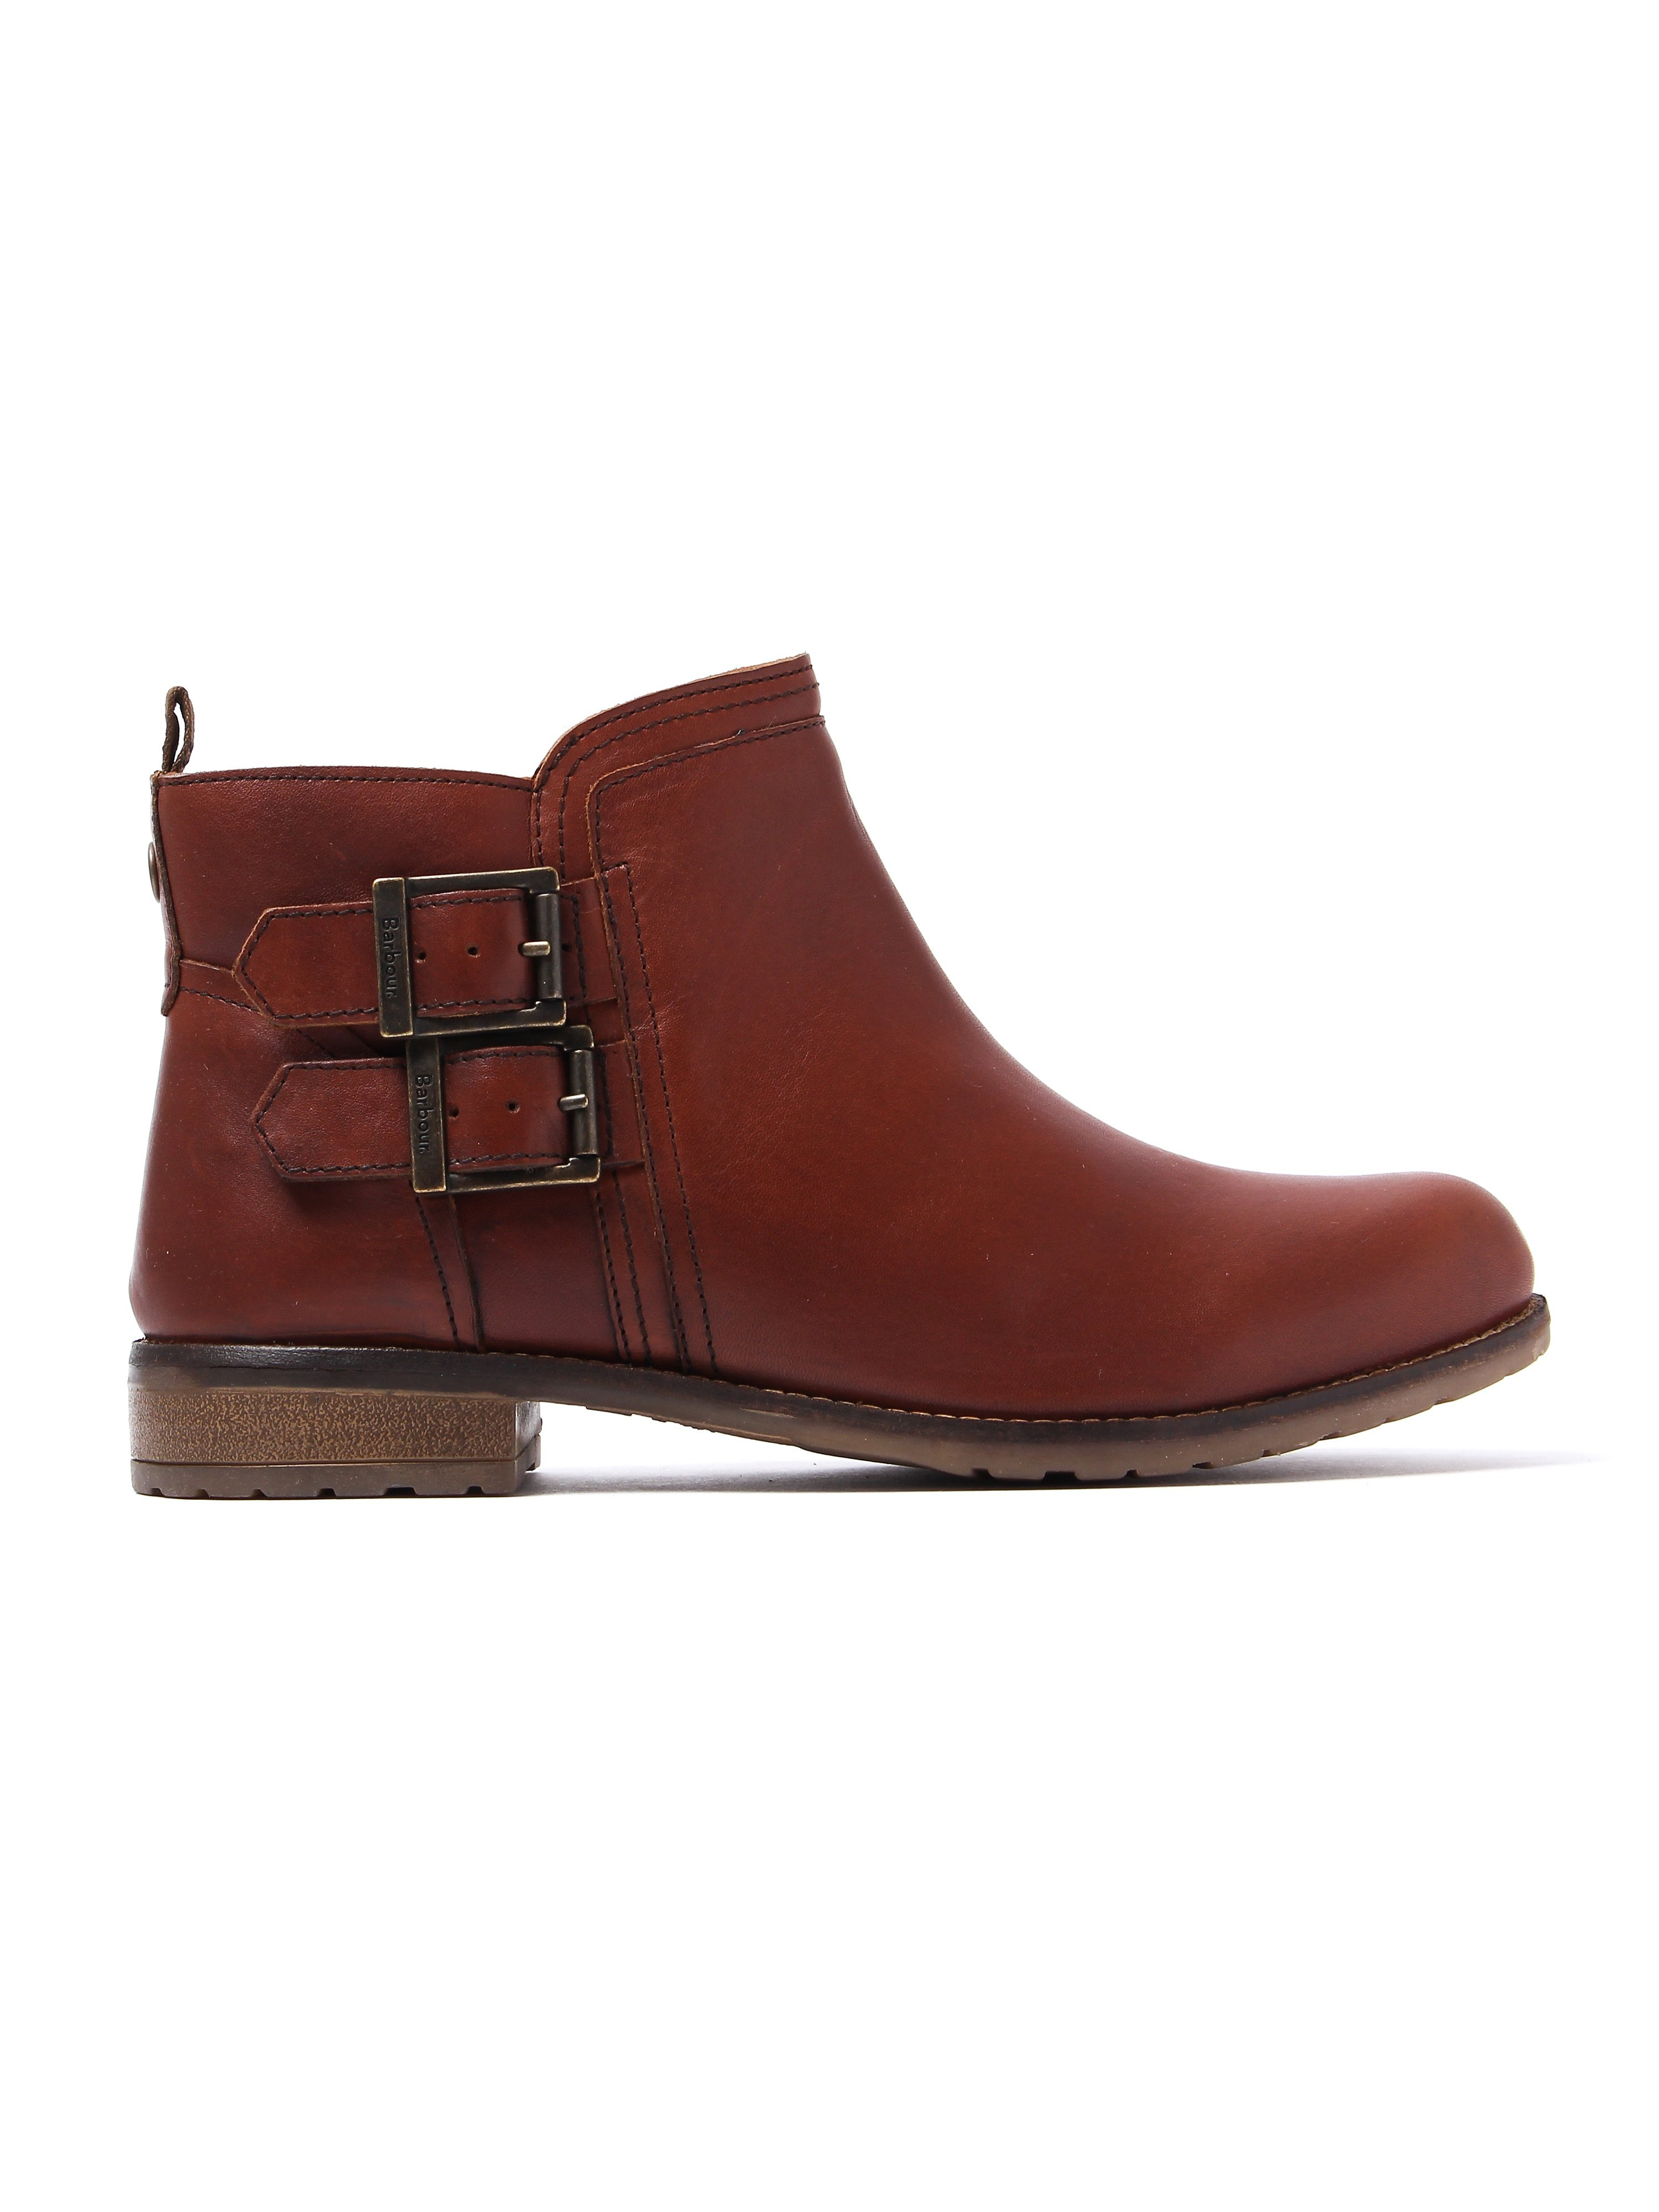 Barbour Women's Sarah Low Buckle Boots - Chestnut Leather